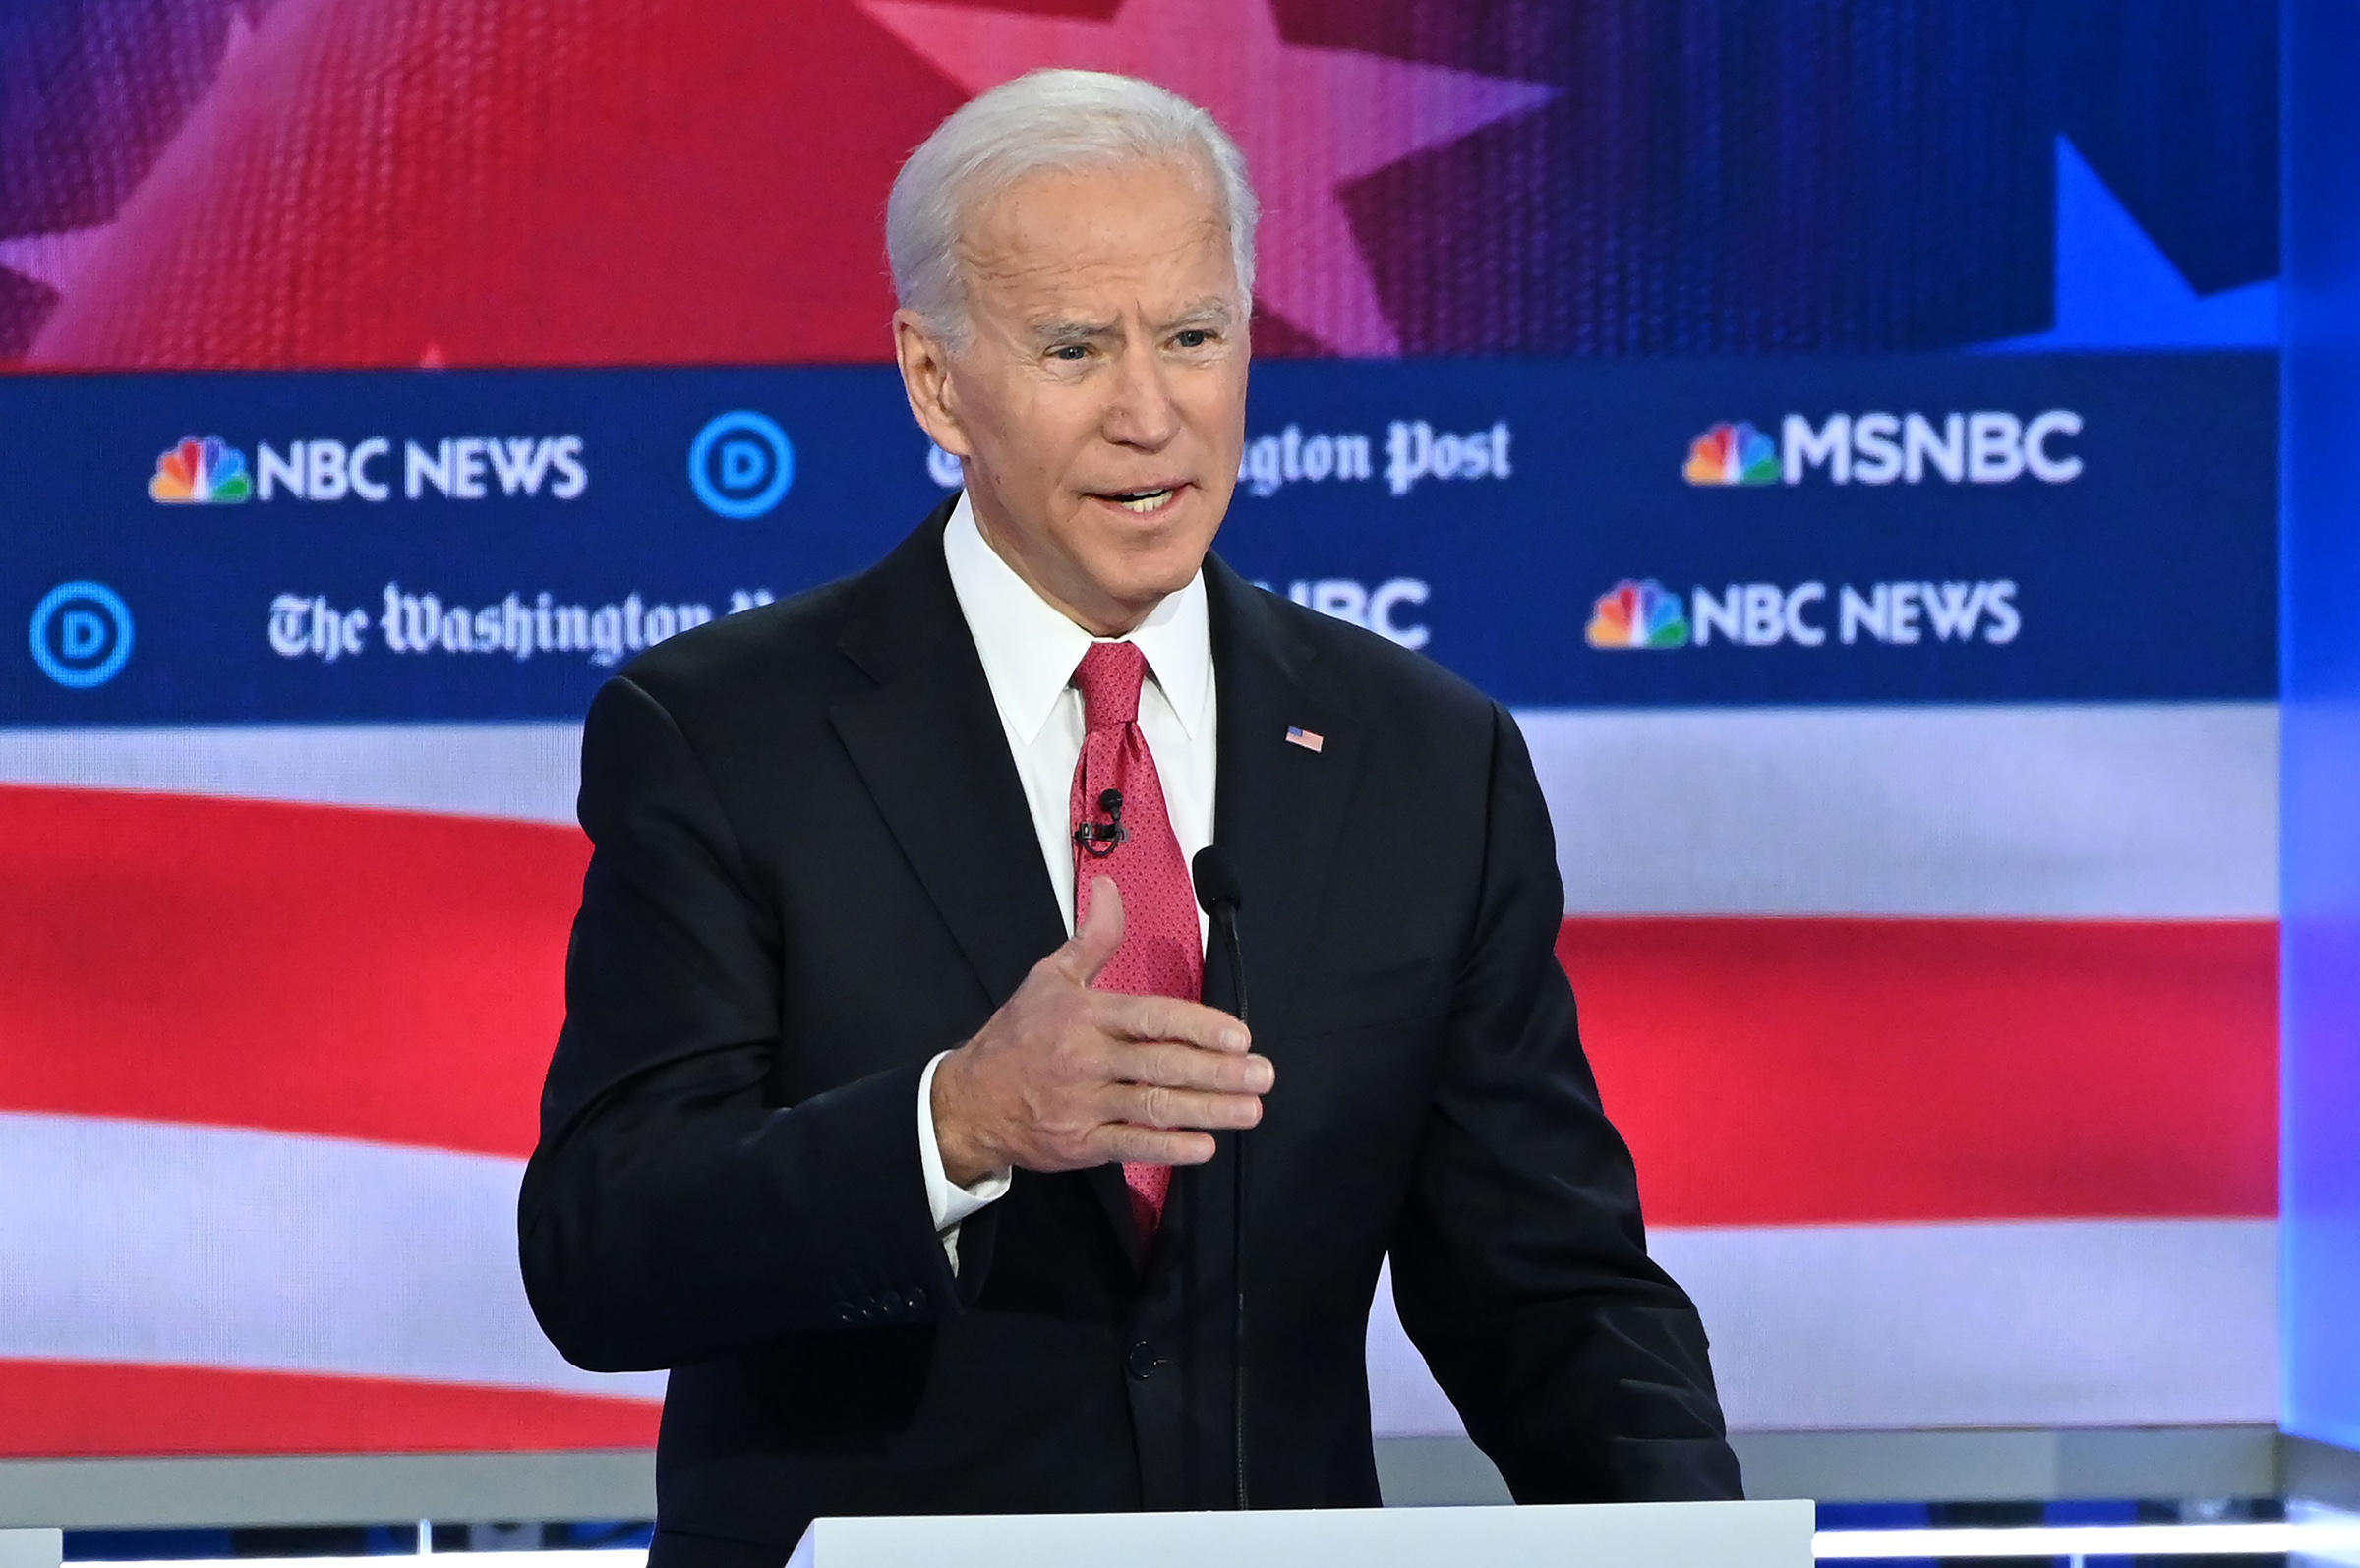 Democratic presidential hopeful former Vice President Joe Biden speaks during the fifth Democratic primary debate of the 2020 presidential campaign season in Atlanta on Nov. 20, 2019.